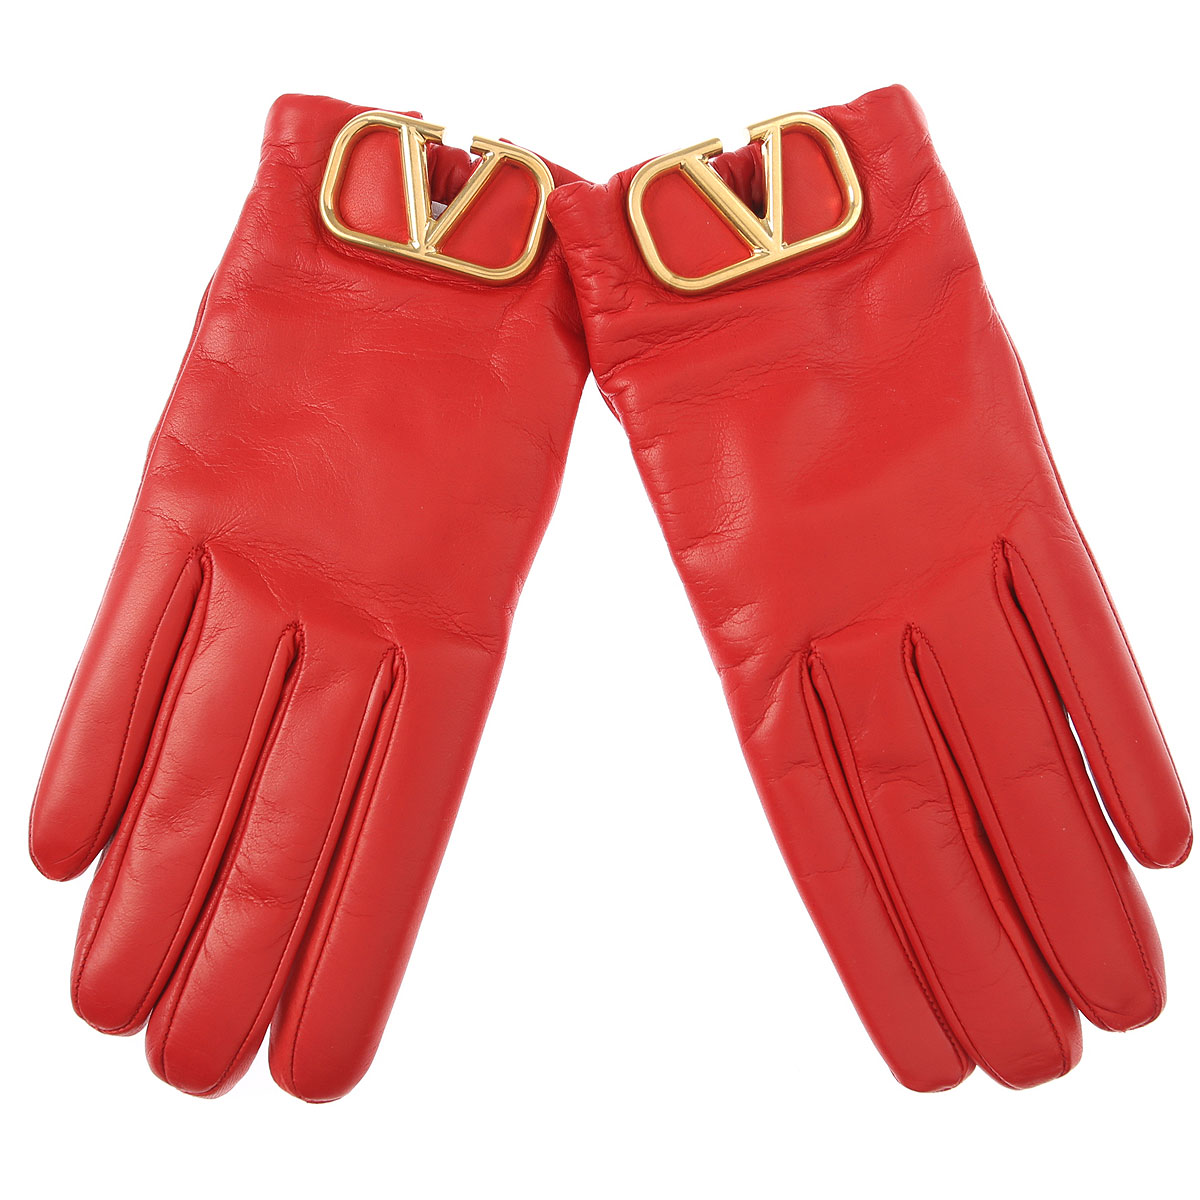 Valentino Gloves for Women, Red, Leather, 2019, 6 1/2 7 1/2